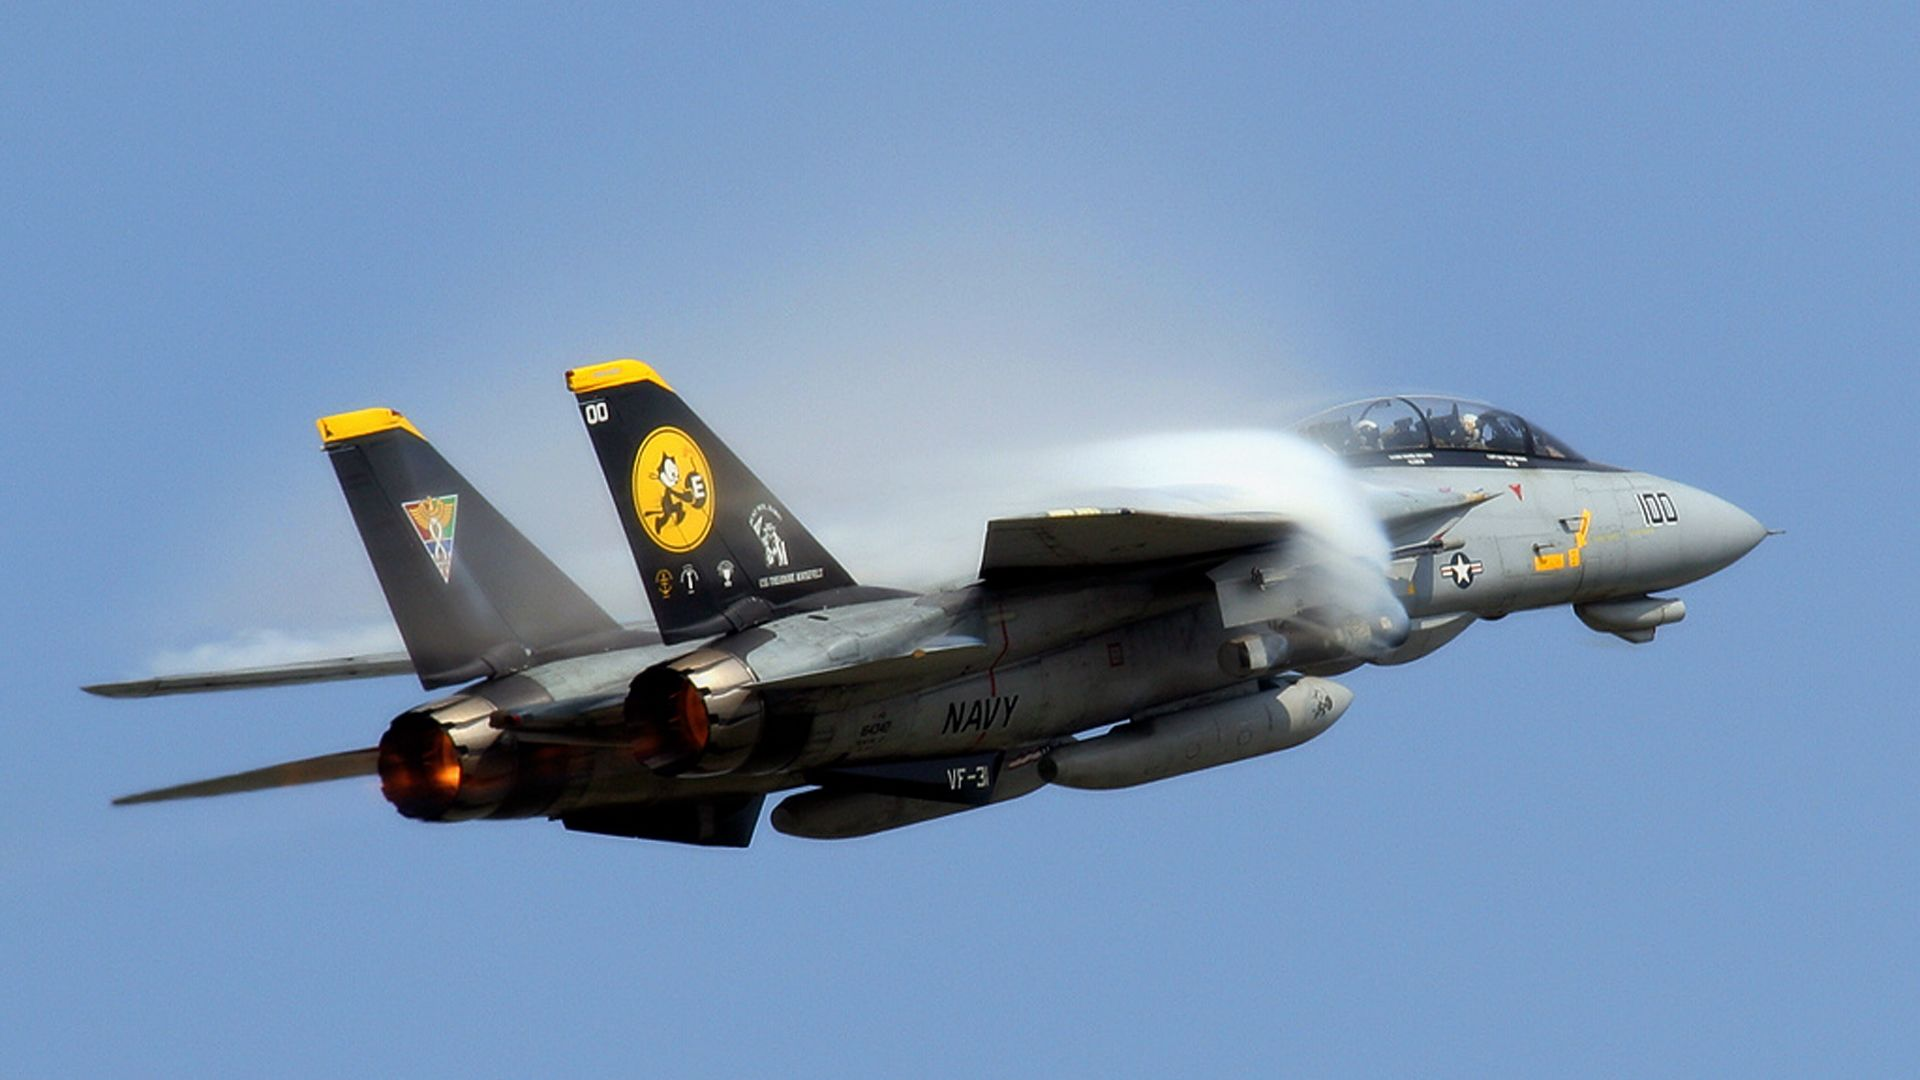 F 14 Tomcat Hd Wallpapers Pictures Hd Wallpapers Fighter Jets F14 Tomcat Fighter Planes